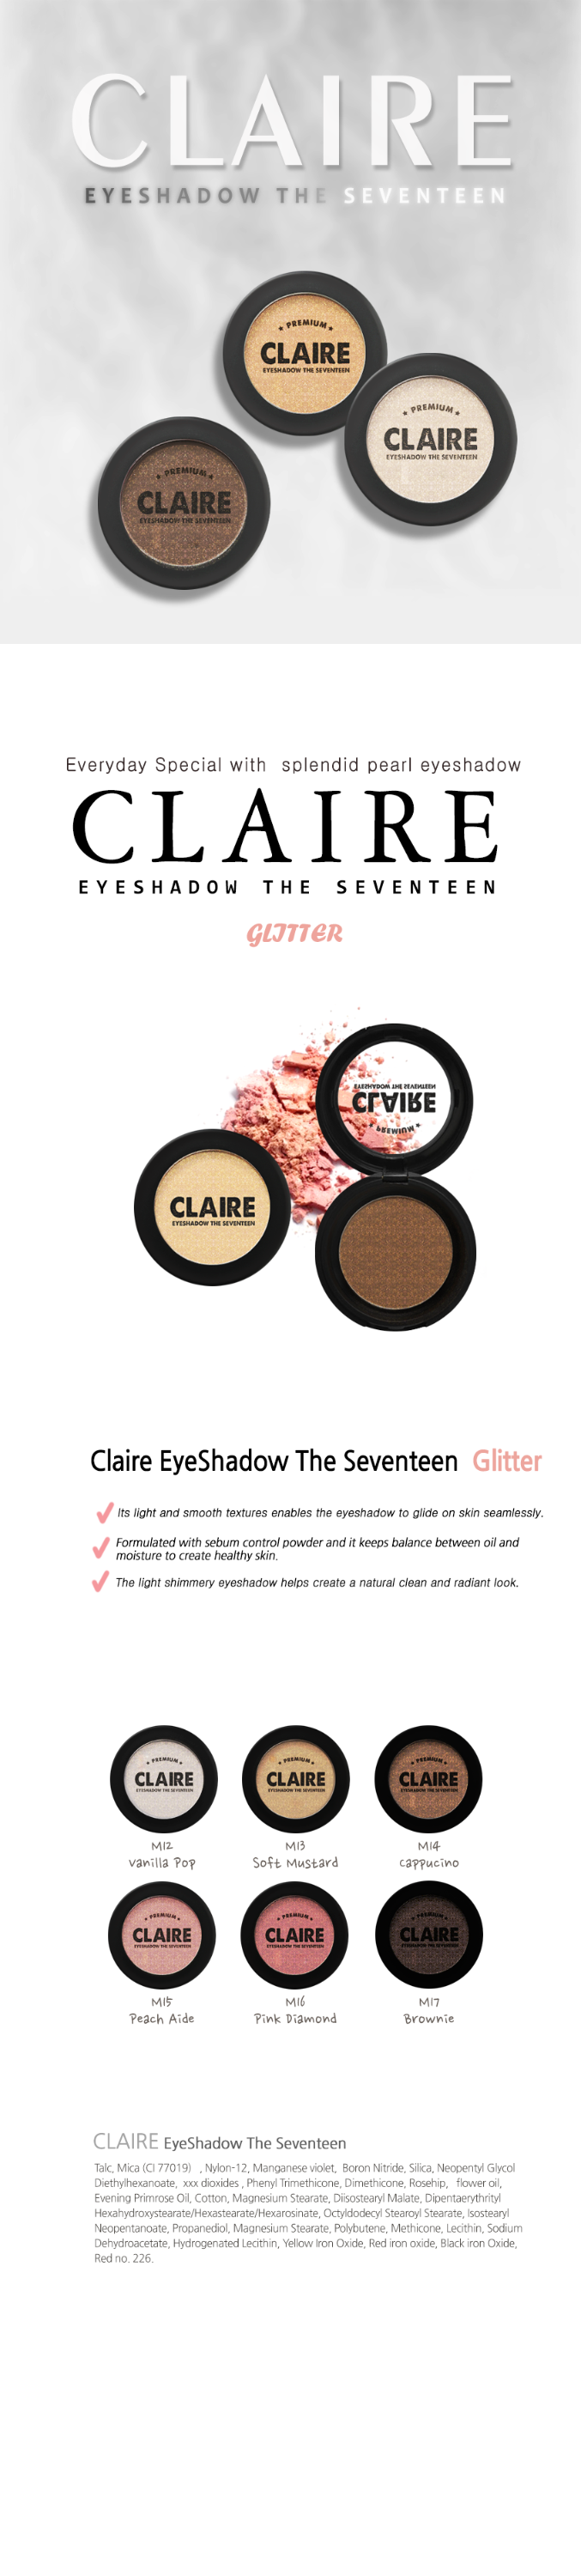 CLAIRE - Eyeshadow The Seventeen Glitter